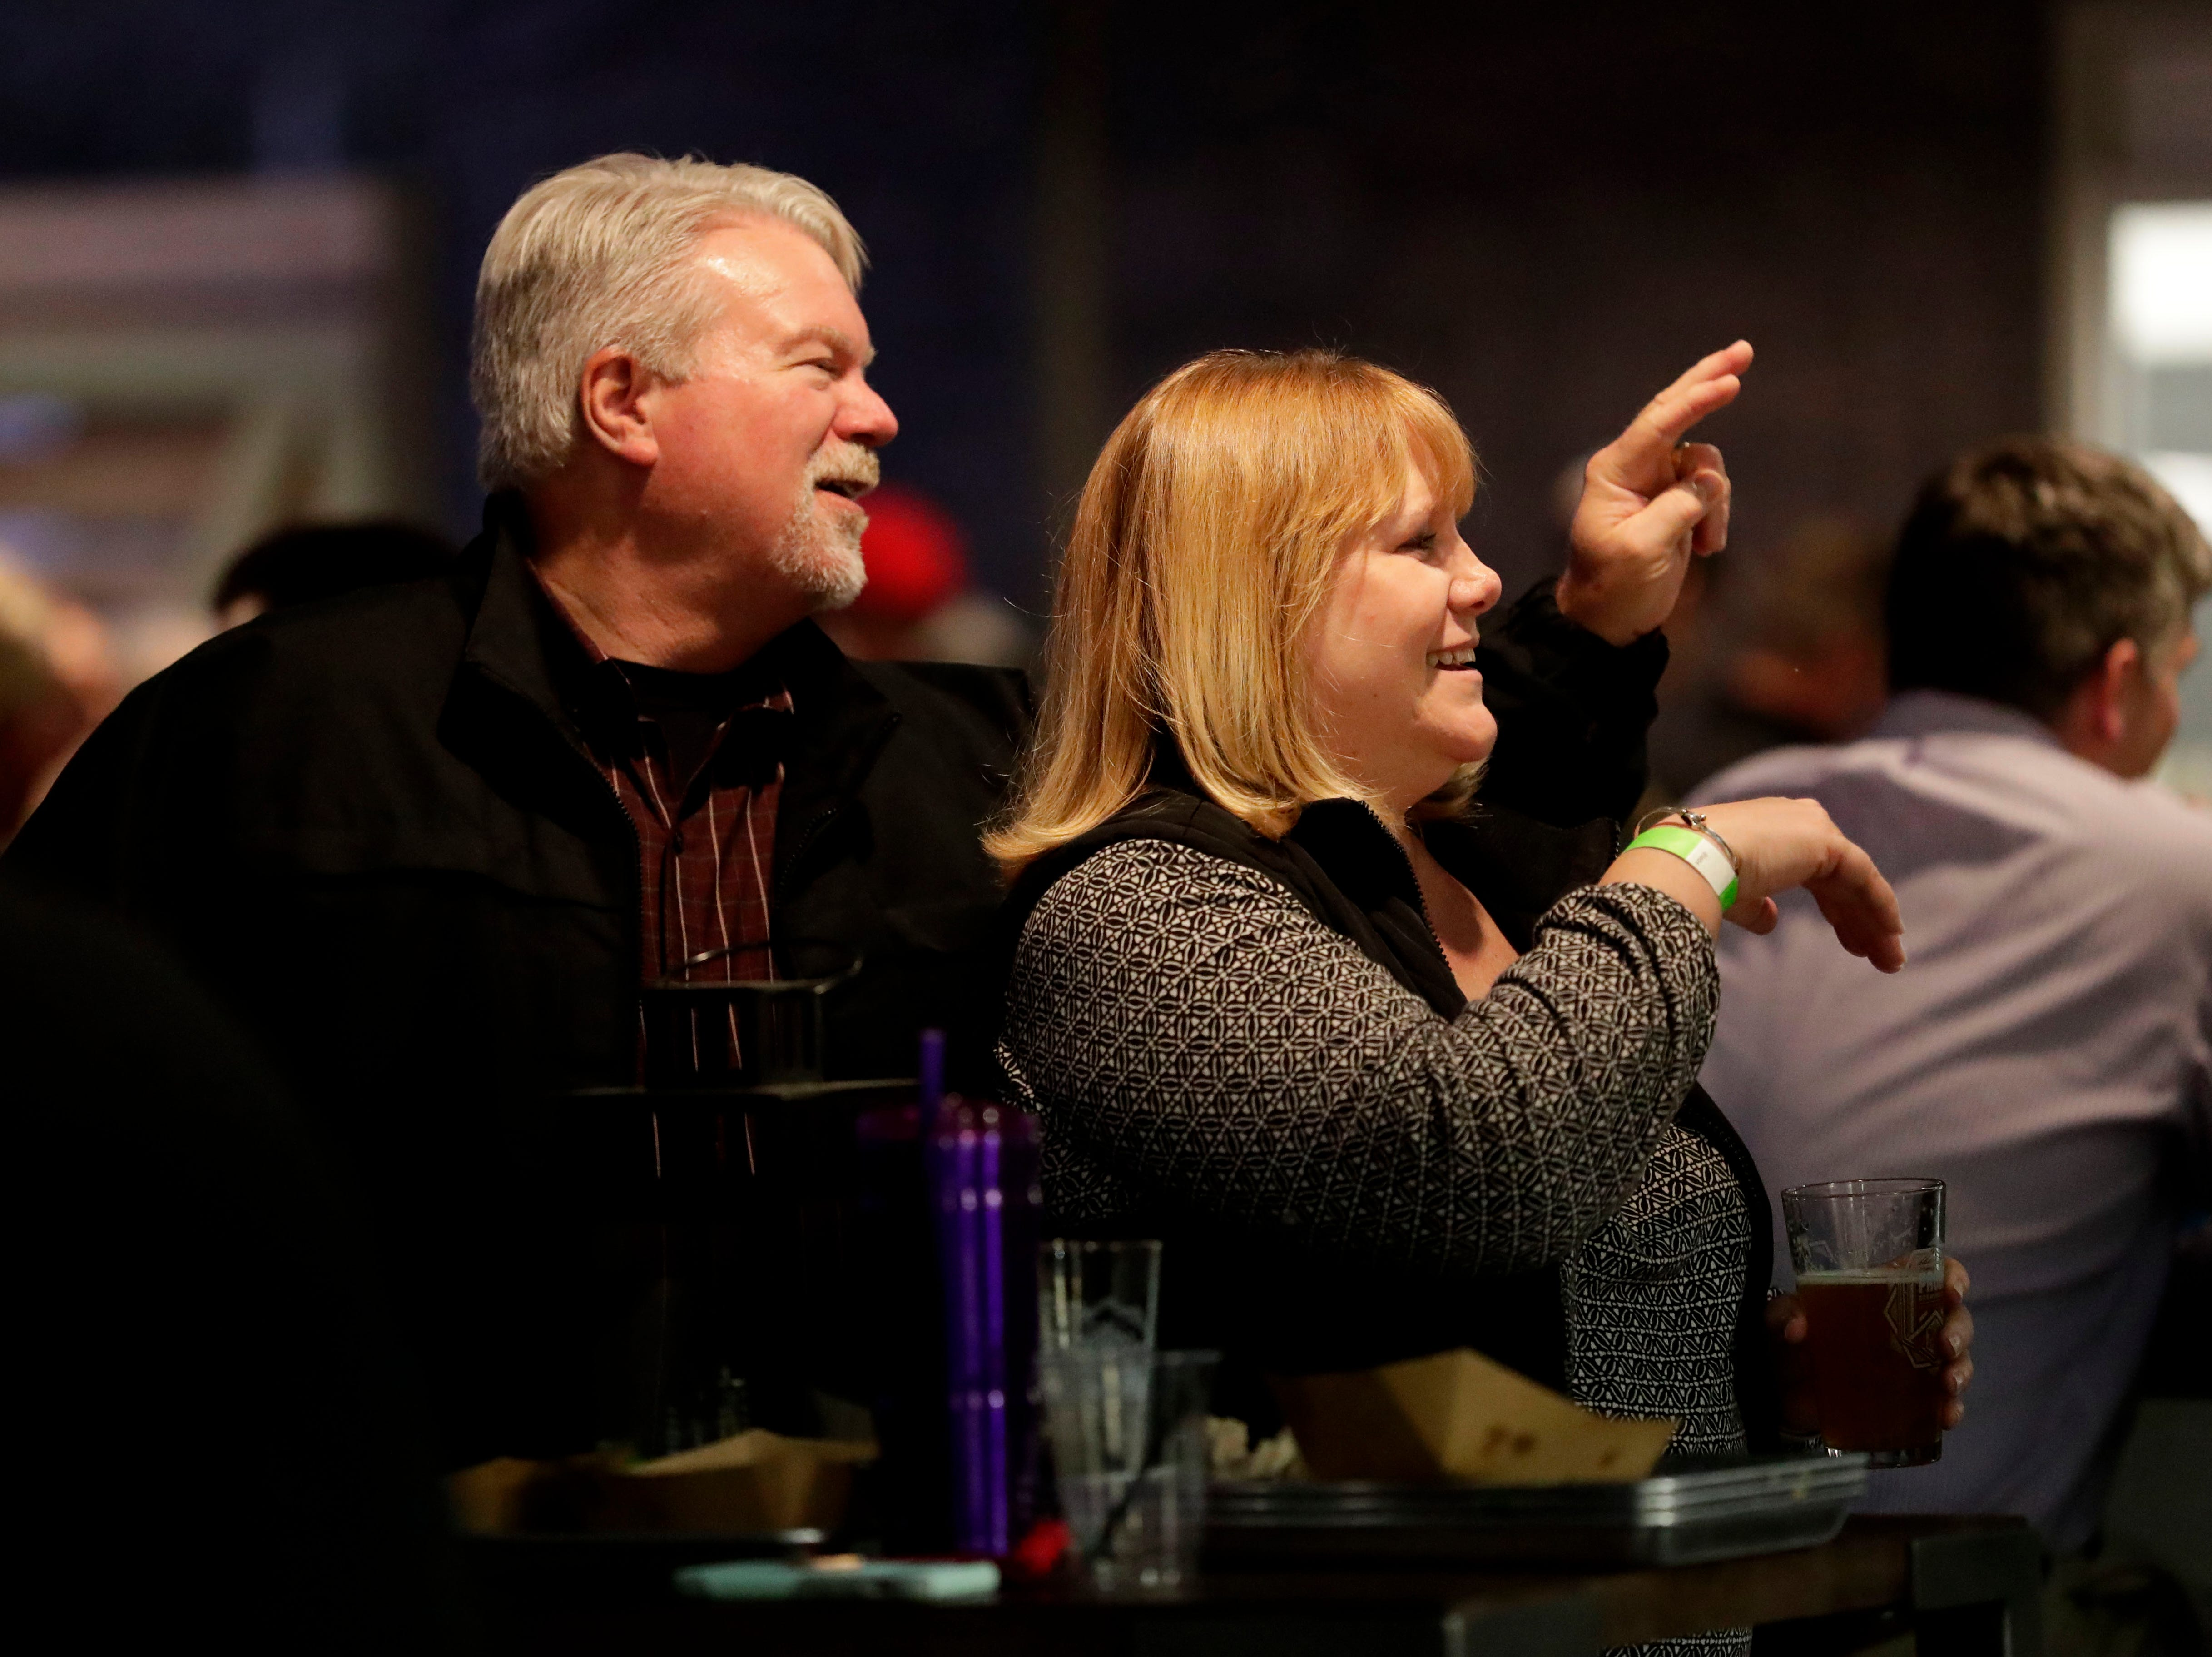 Paul Whitfield, left, and his wife, Stephanie Whitfield, wave to their friends while enjoying Proof Brewery's soft opening, Friday, Feb. 1, 2019.